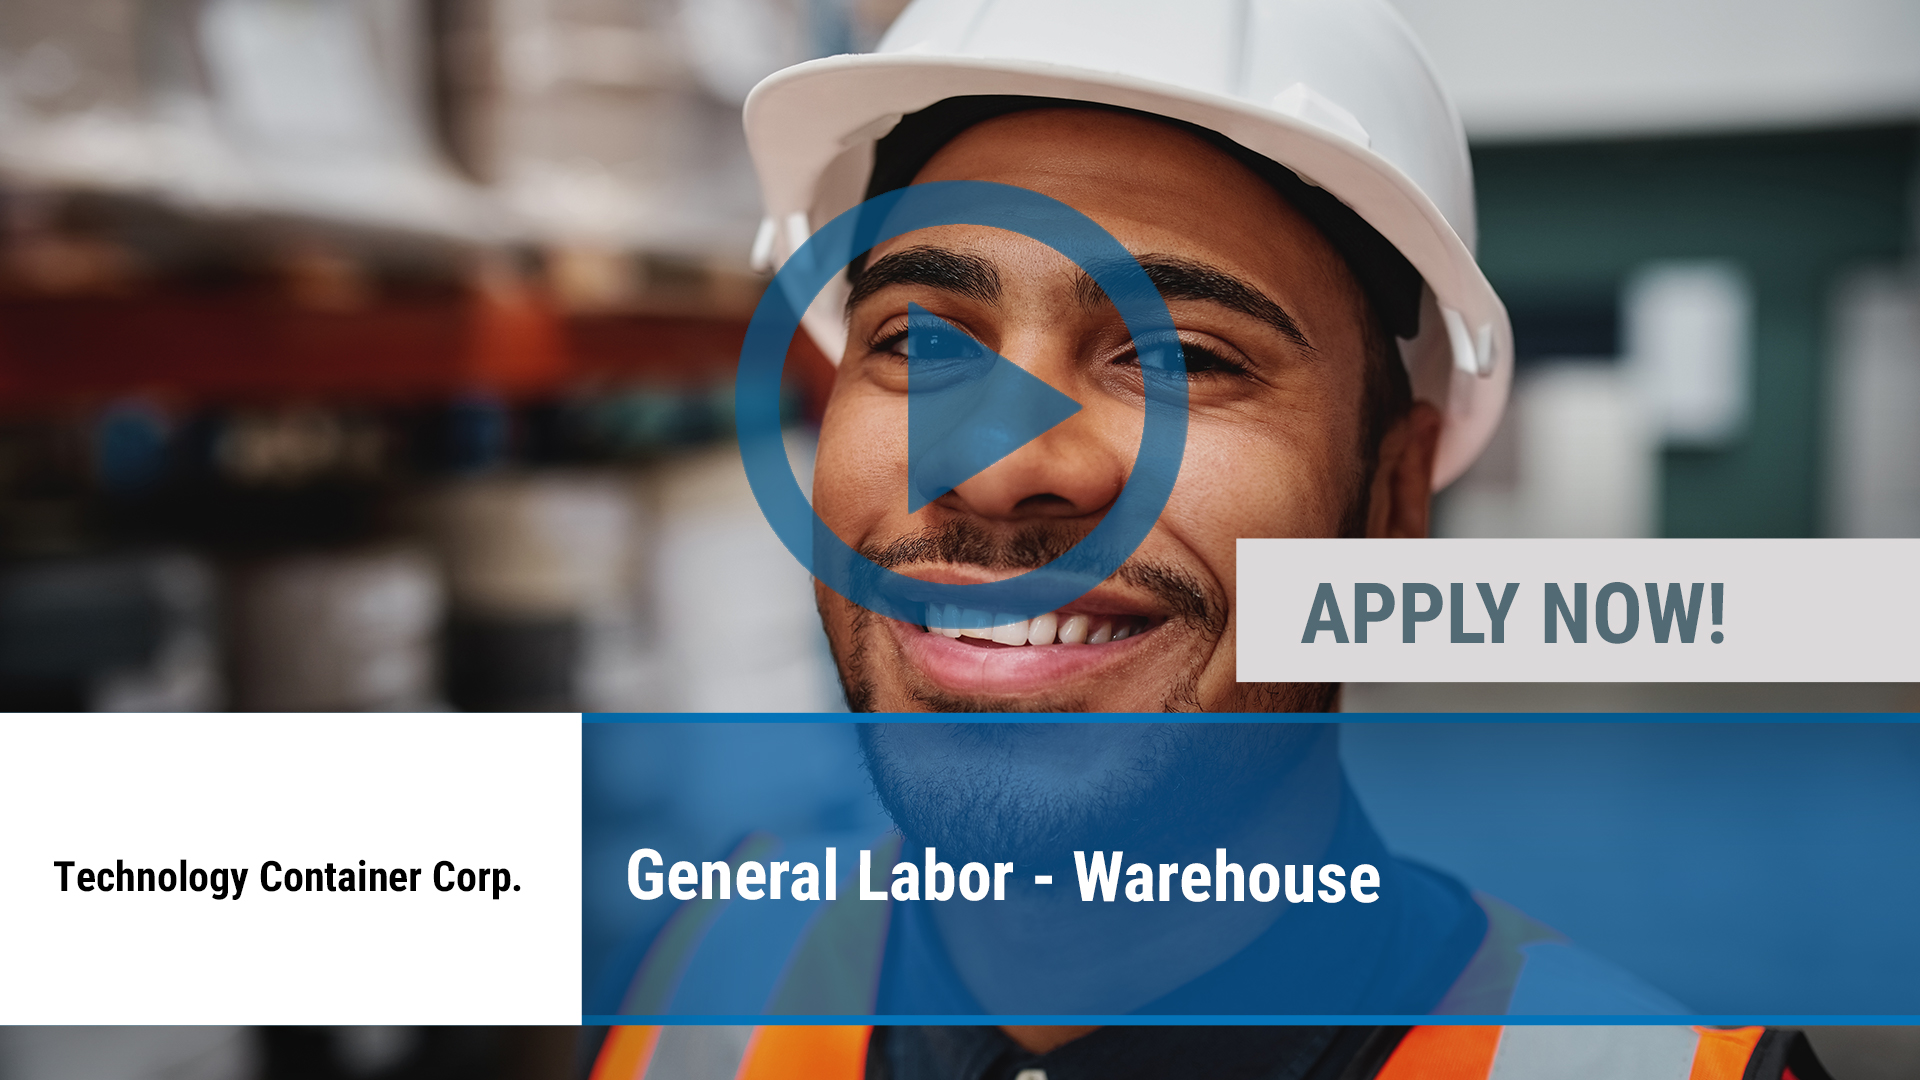 Watch our careers video for available job opening General Labor - Warehouse in Desoto, TX